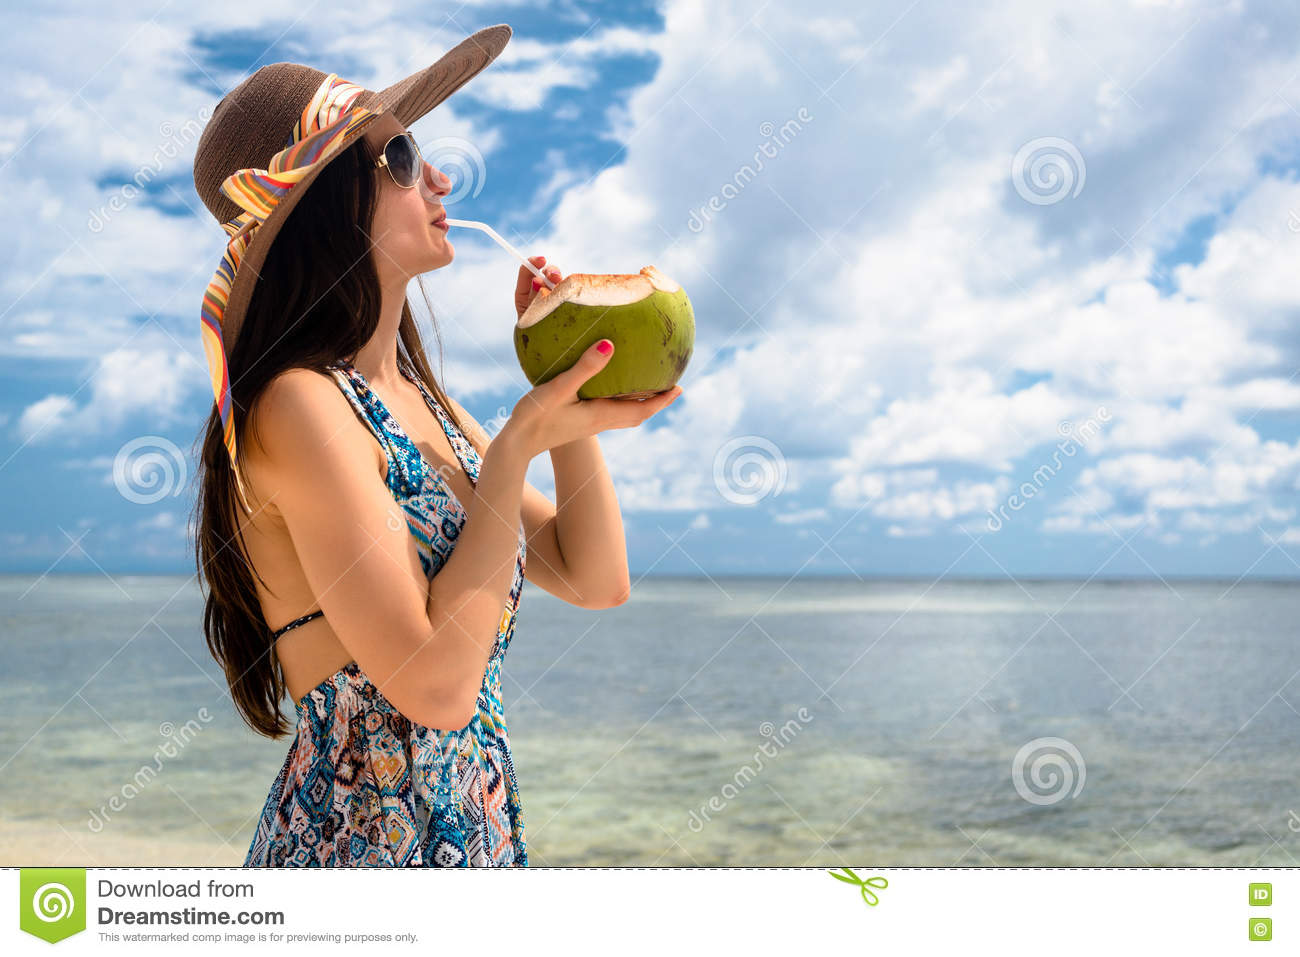 Woman Tourist Drinking Coconut Milk At Beach In Holidays